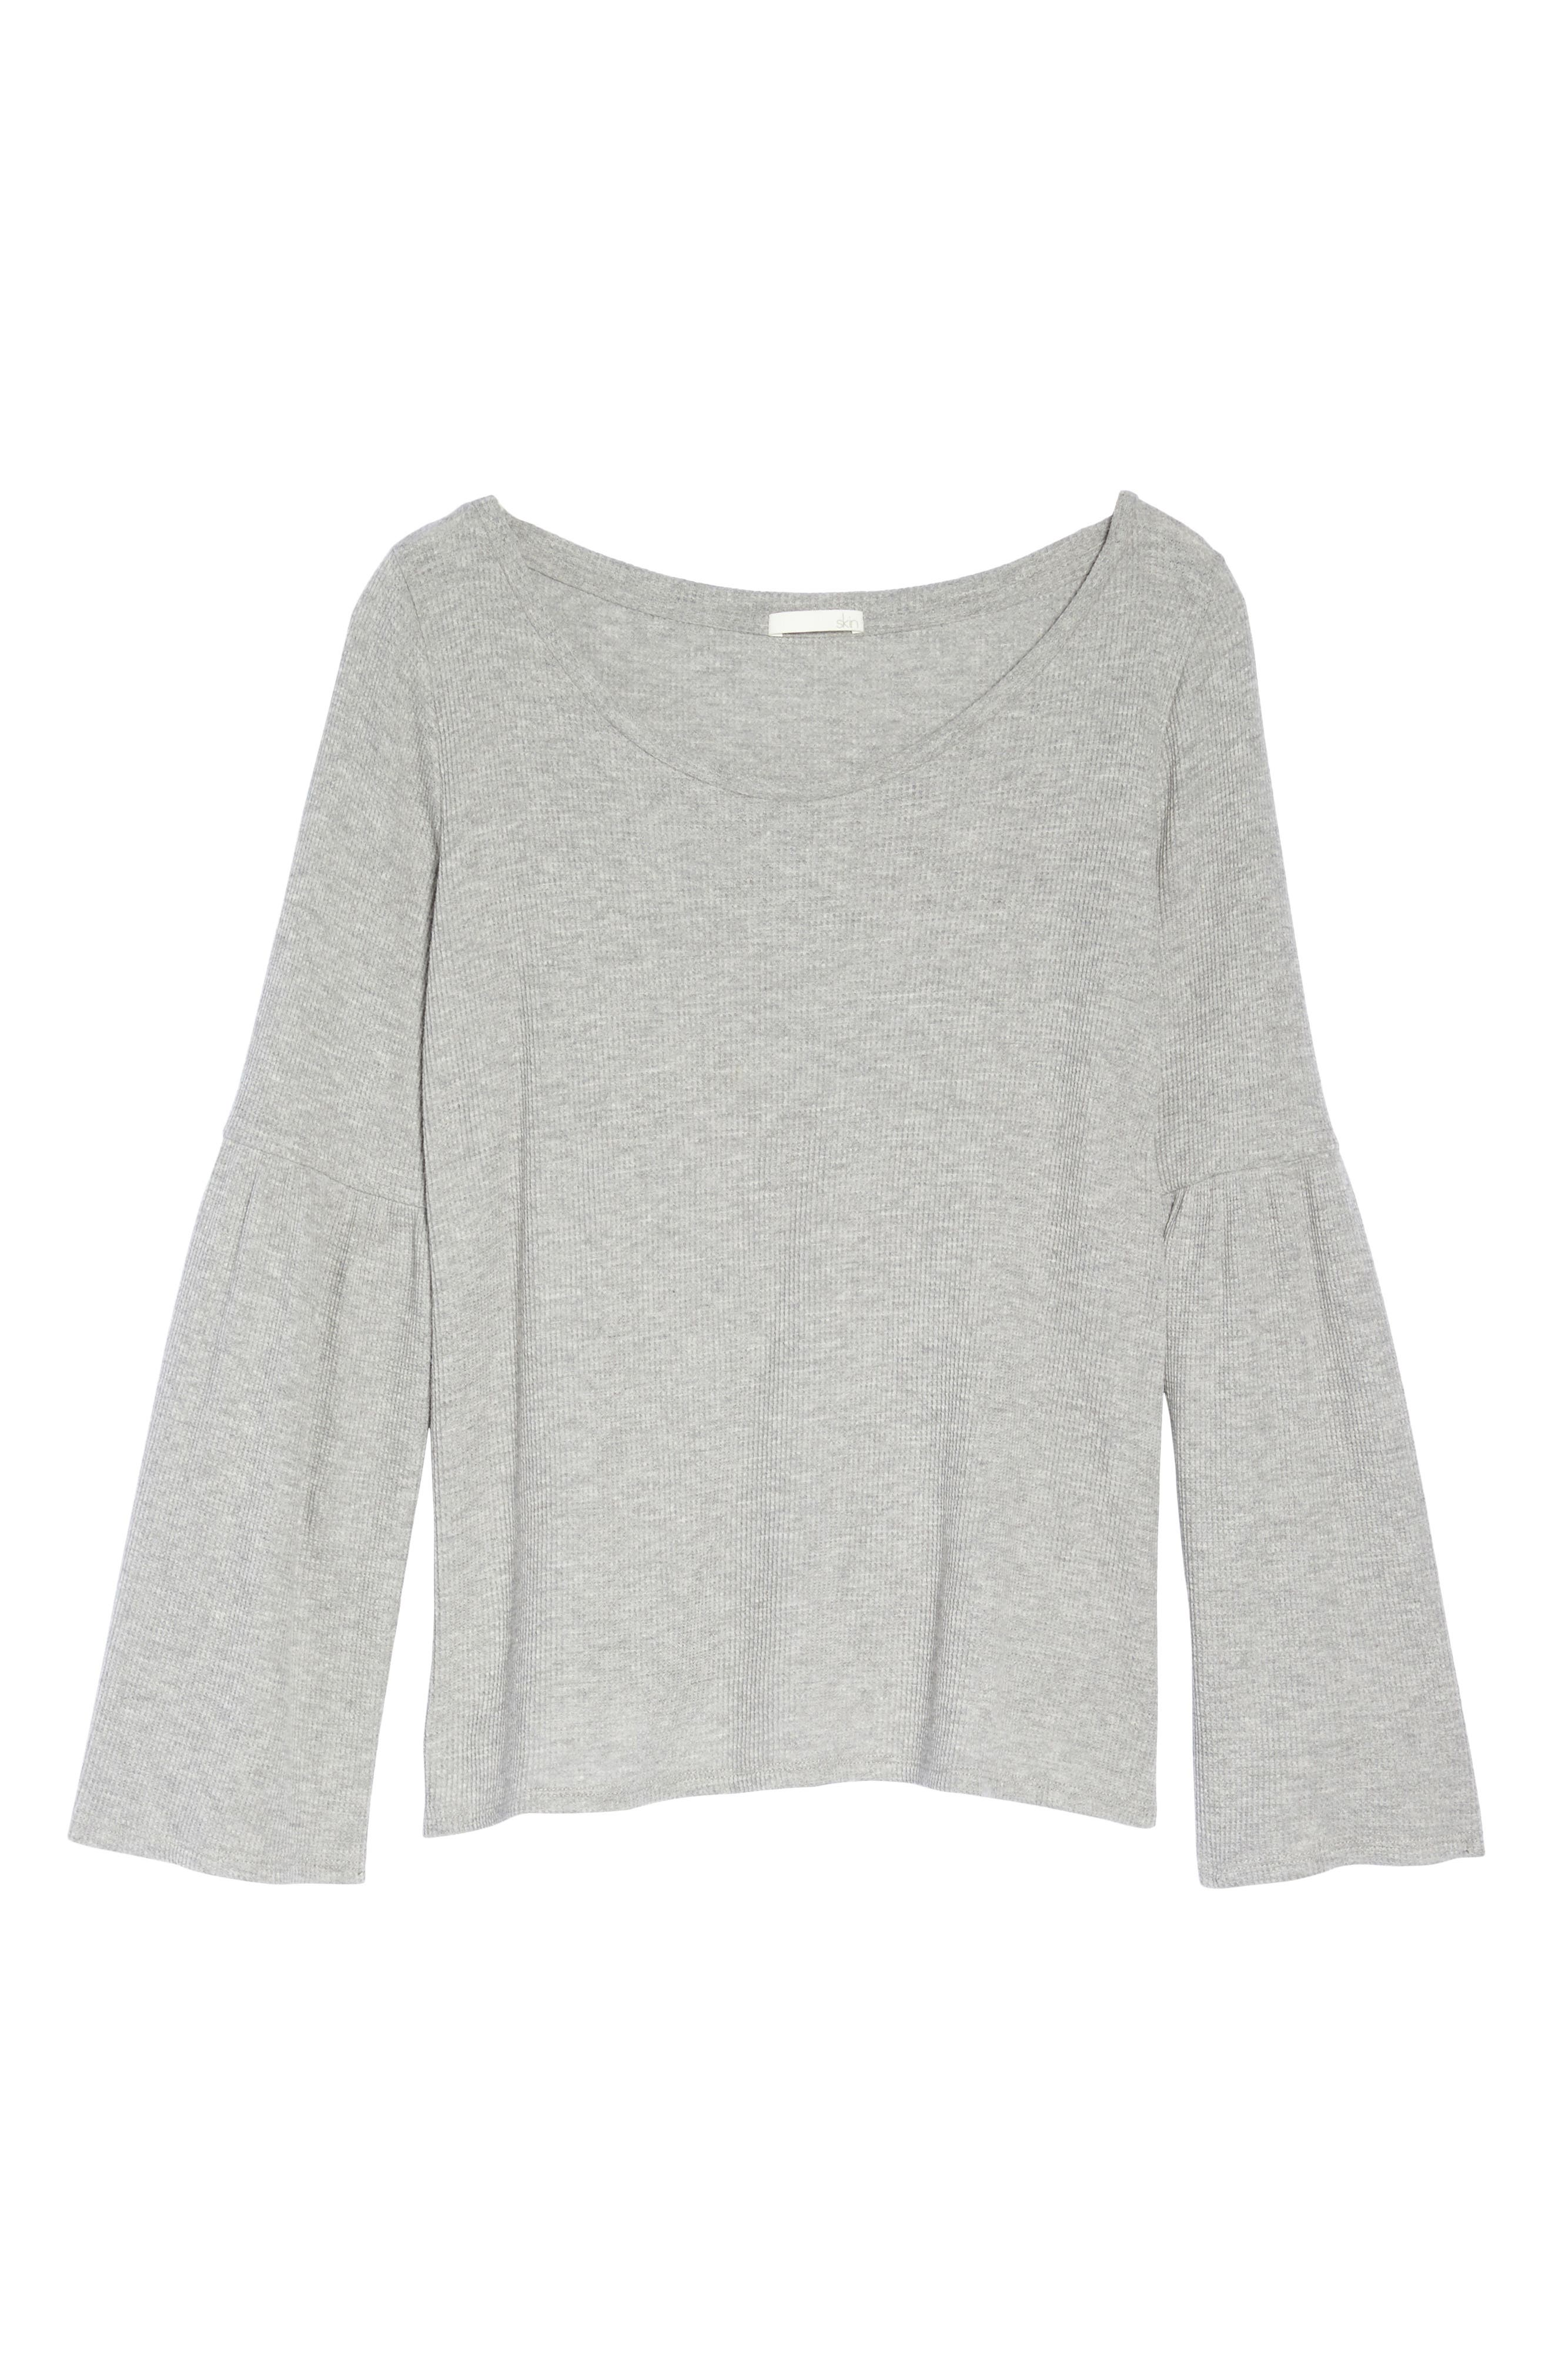 Imo Thermal Knit Tee,                             Alternate thumbnail 4, color,                             Heather Grey